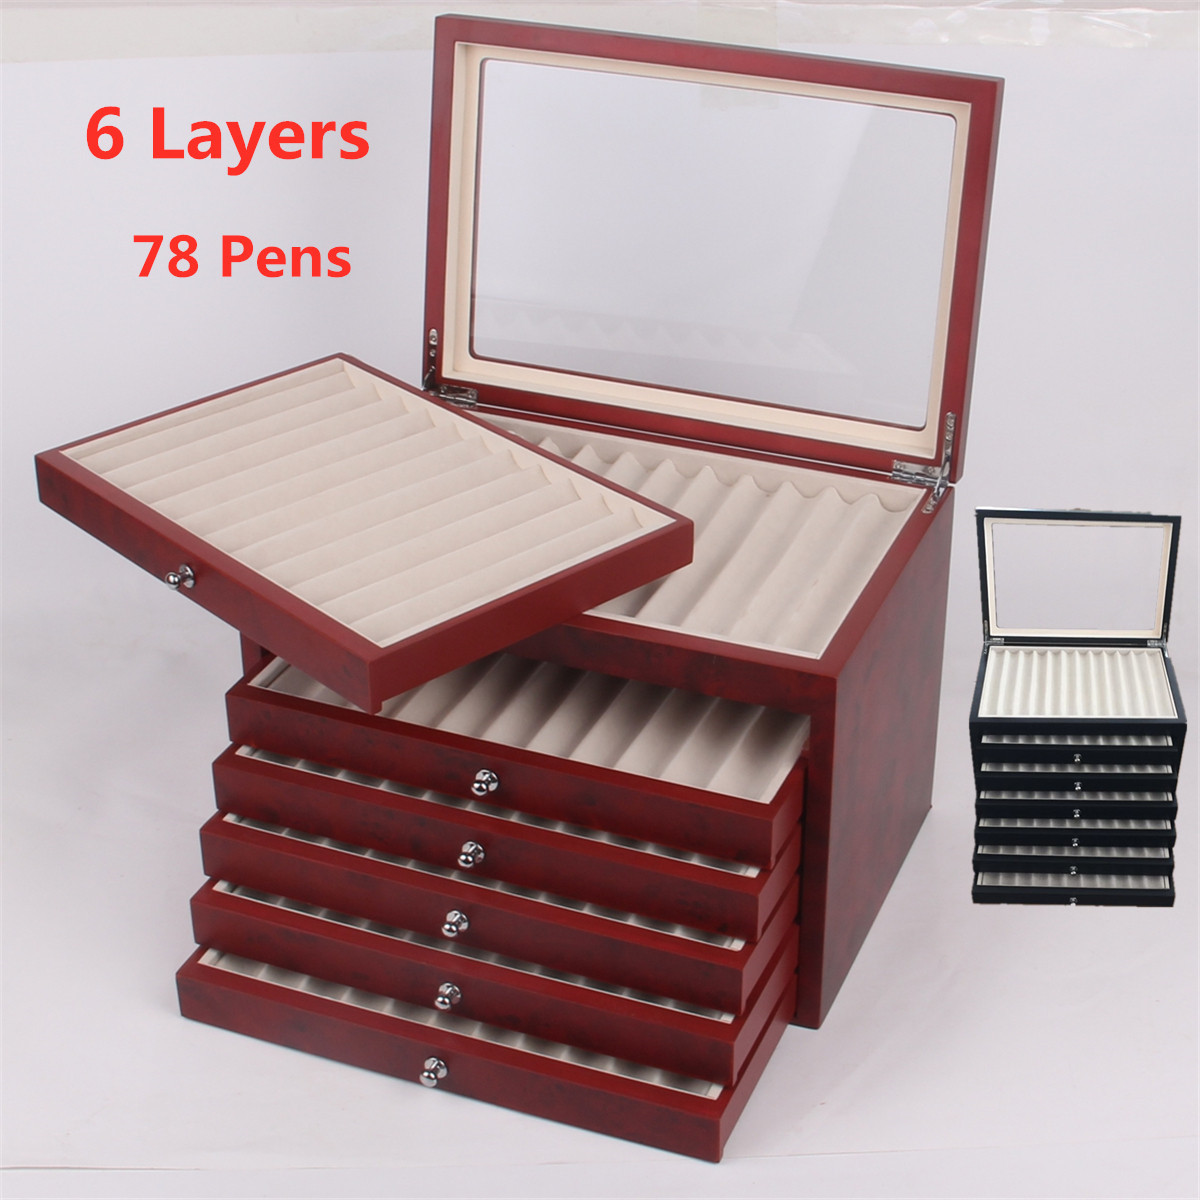 6 Layer Large Capacity Wooden Pen Box Storage Collector Organizer Box 78 Pen Fountain Wood Display Case Holder Black Red